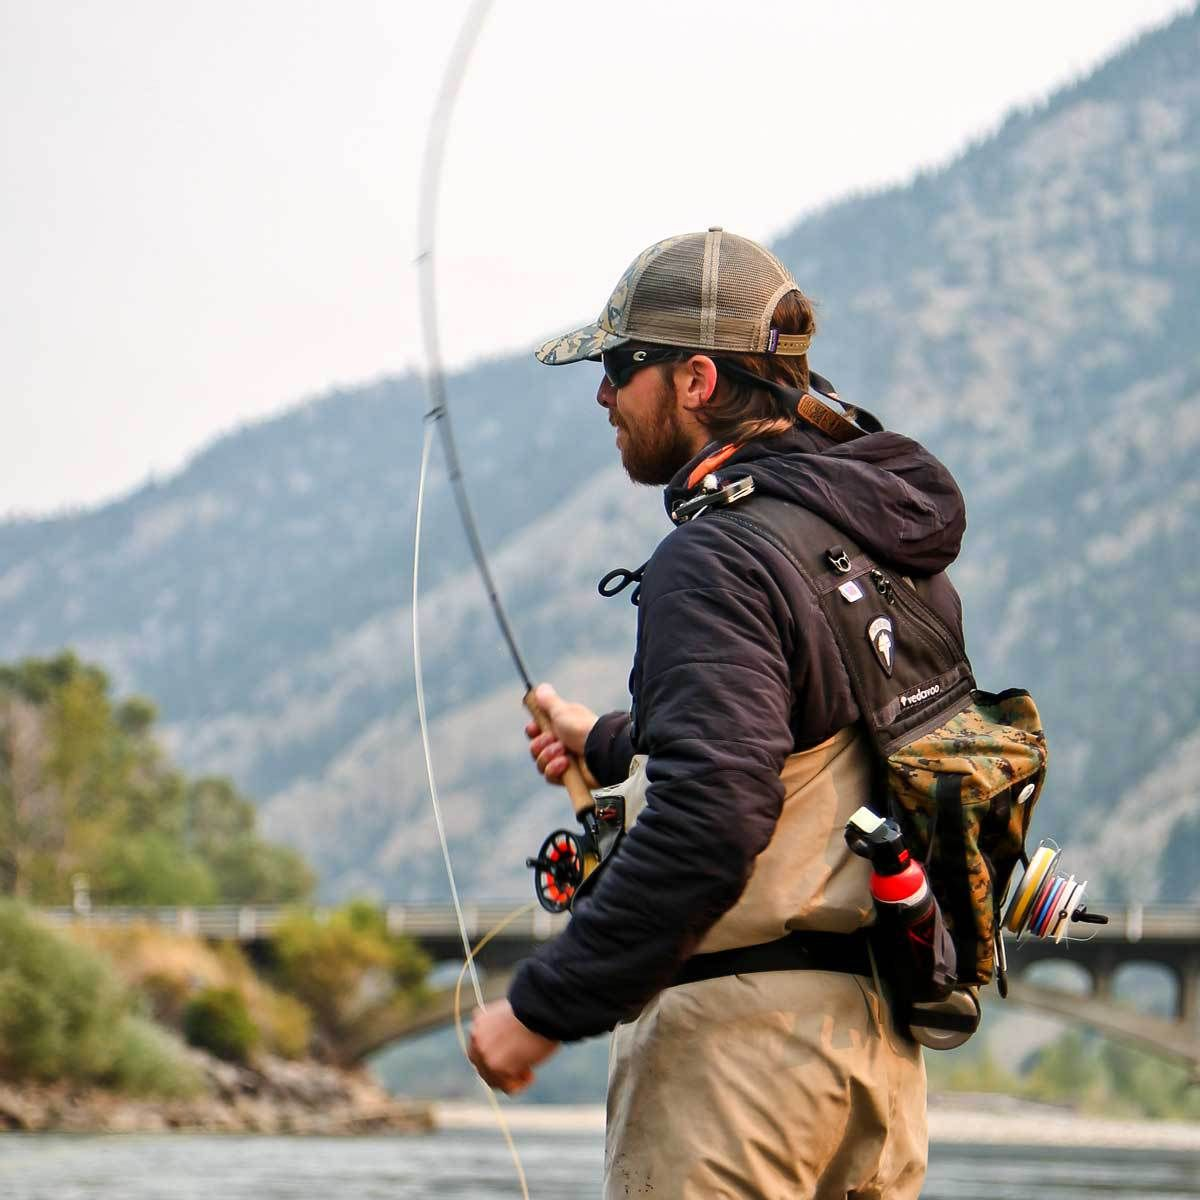 Vedavoo Tl Beast Sling Fly Fishing Essential Gear